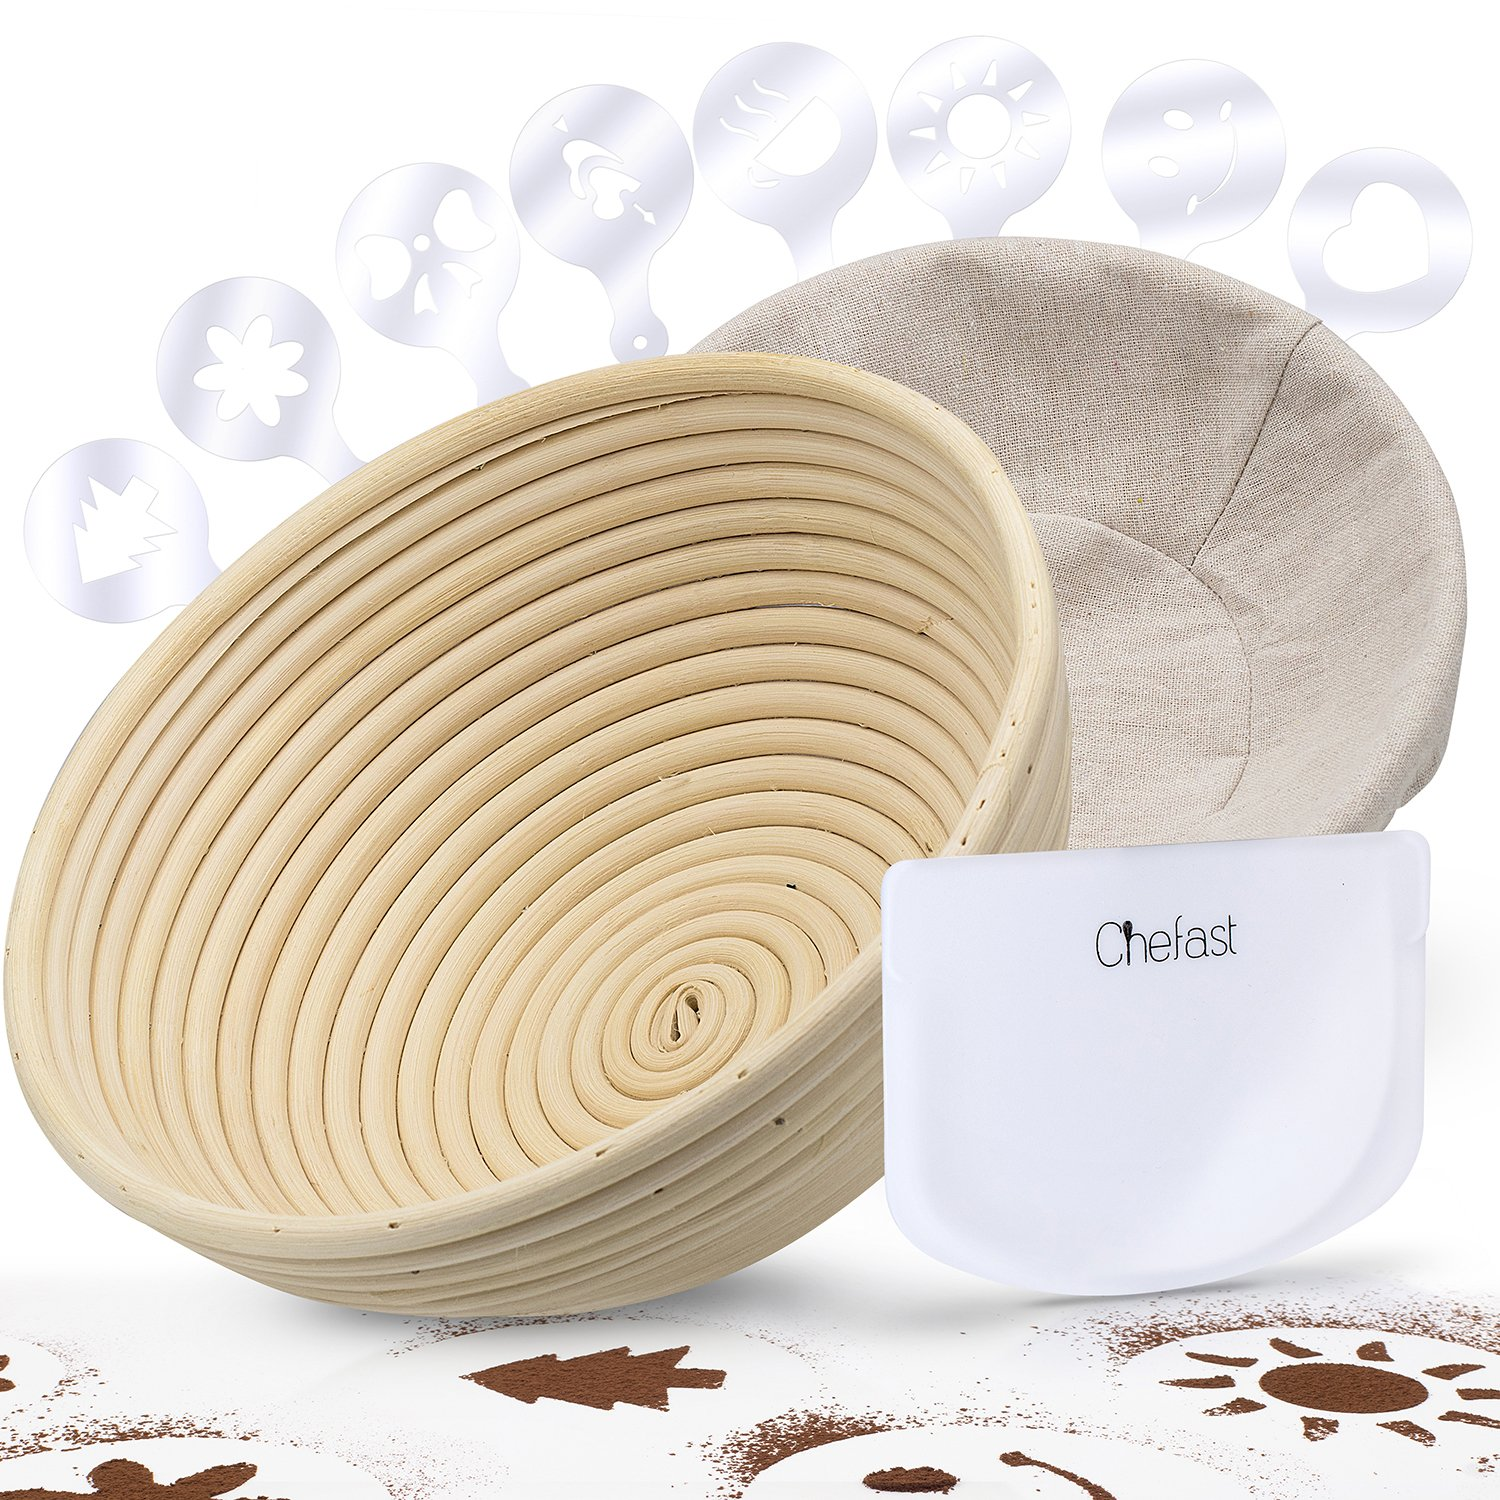 "Chefast Banneton Proofing Basket Set: Combo Kit of 9.5"" Natural Rattan Basket with Brotform Cloth Liner, 8 Bread Stencils and Dough/Bowl Scraper + Instructions - Make Perfectly Round Sourdough Boules"